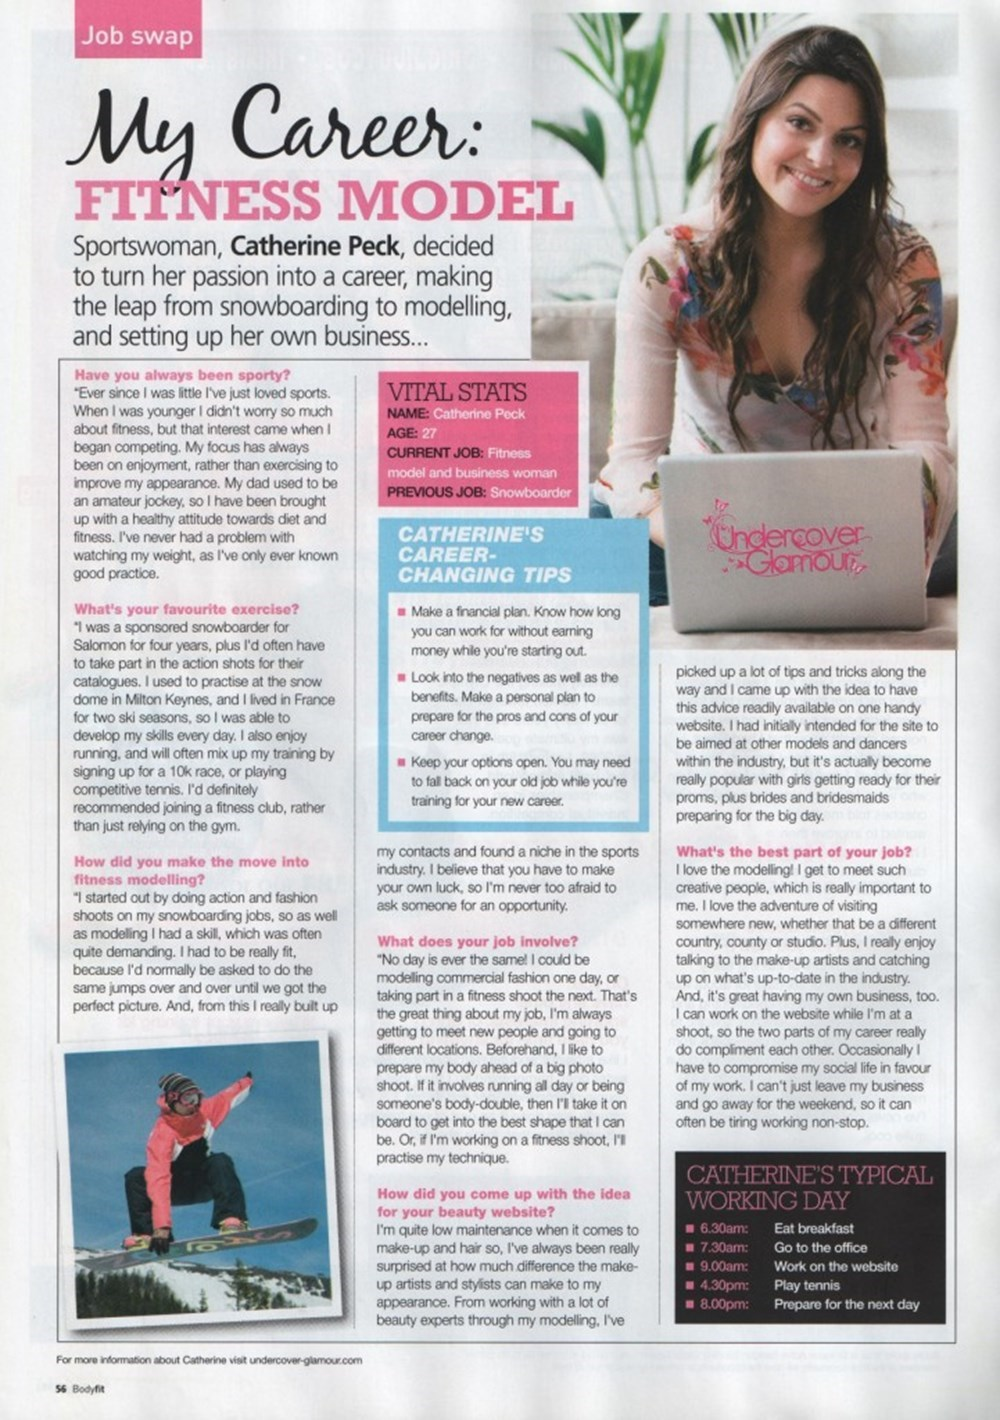 Catherine Peck Interview Modelling Career and Hair Extensions Bussiness Undercover Glamour